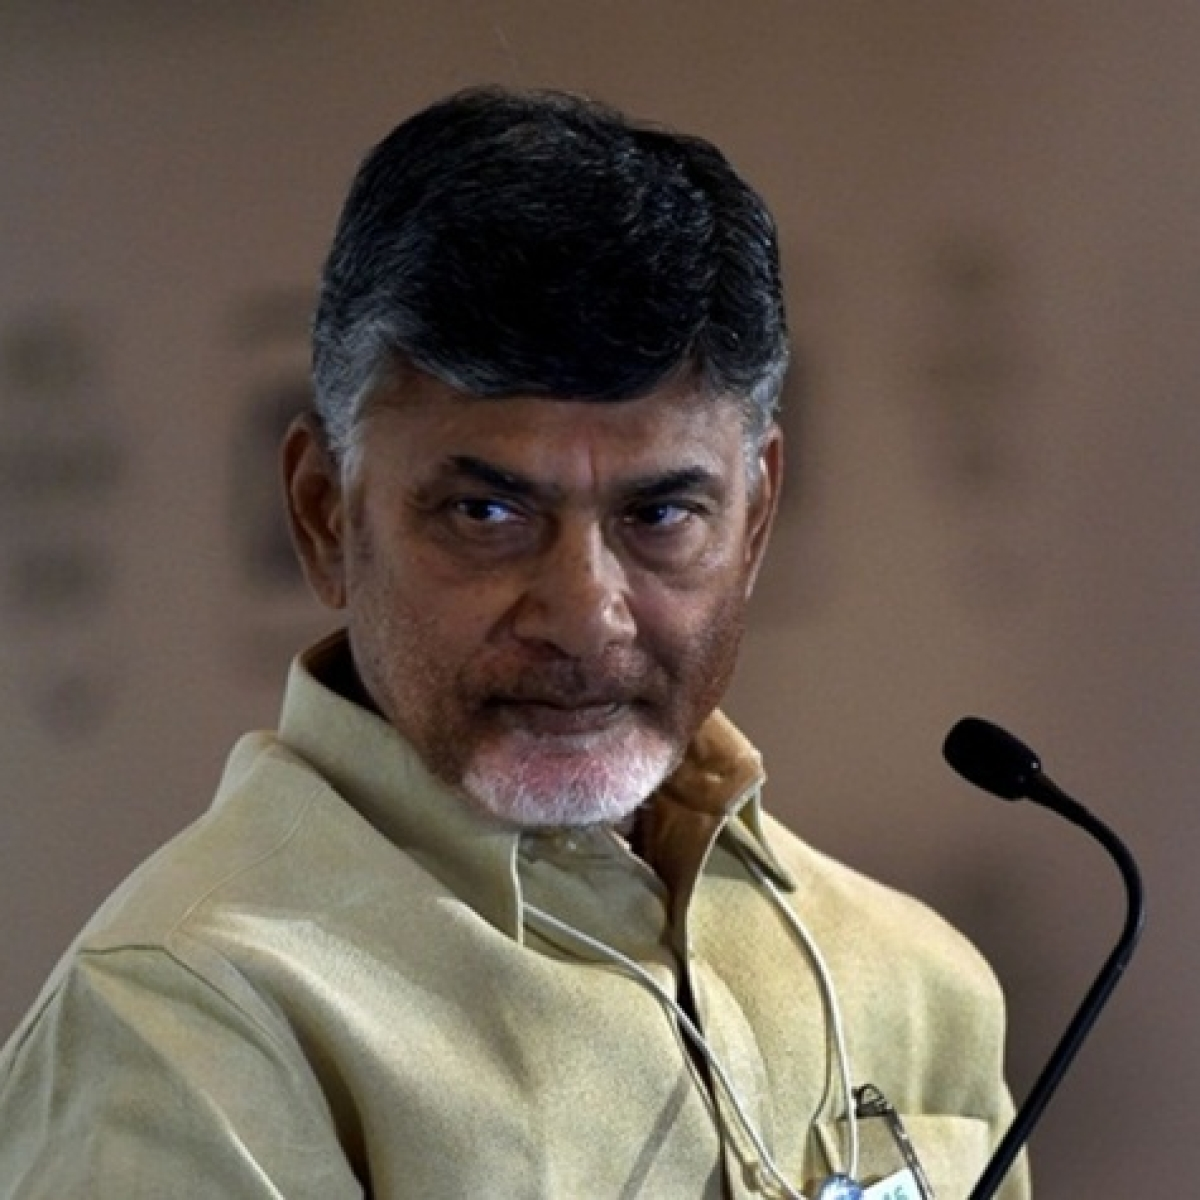 Andhra Pradesh CM Jagan Reddy is a psycho, acting in a vindictive manner: Chandrababu Naidu